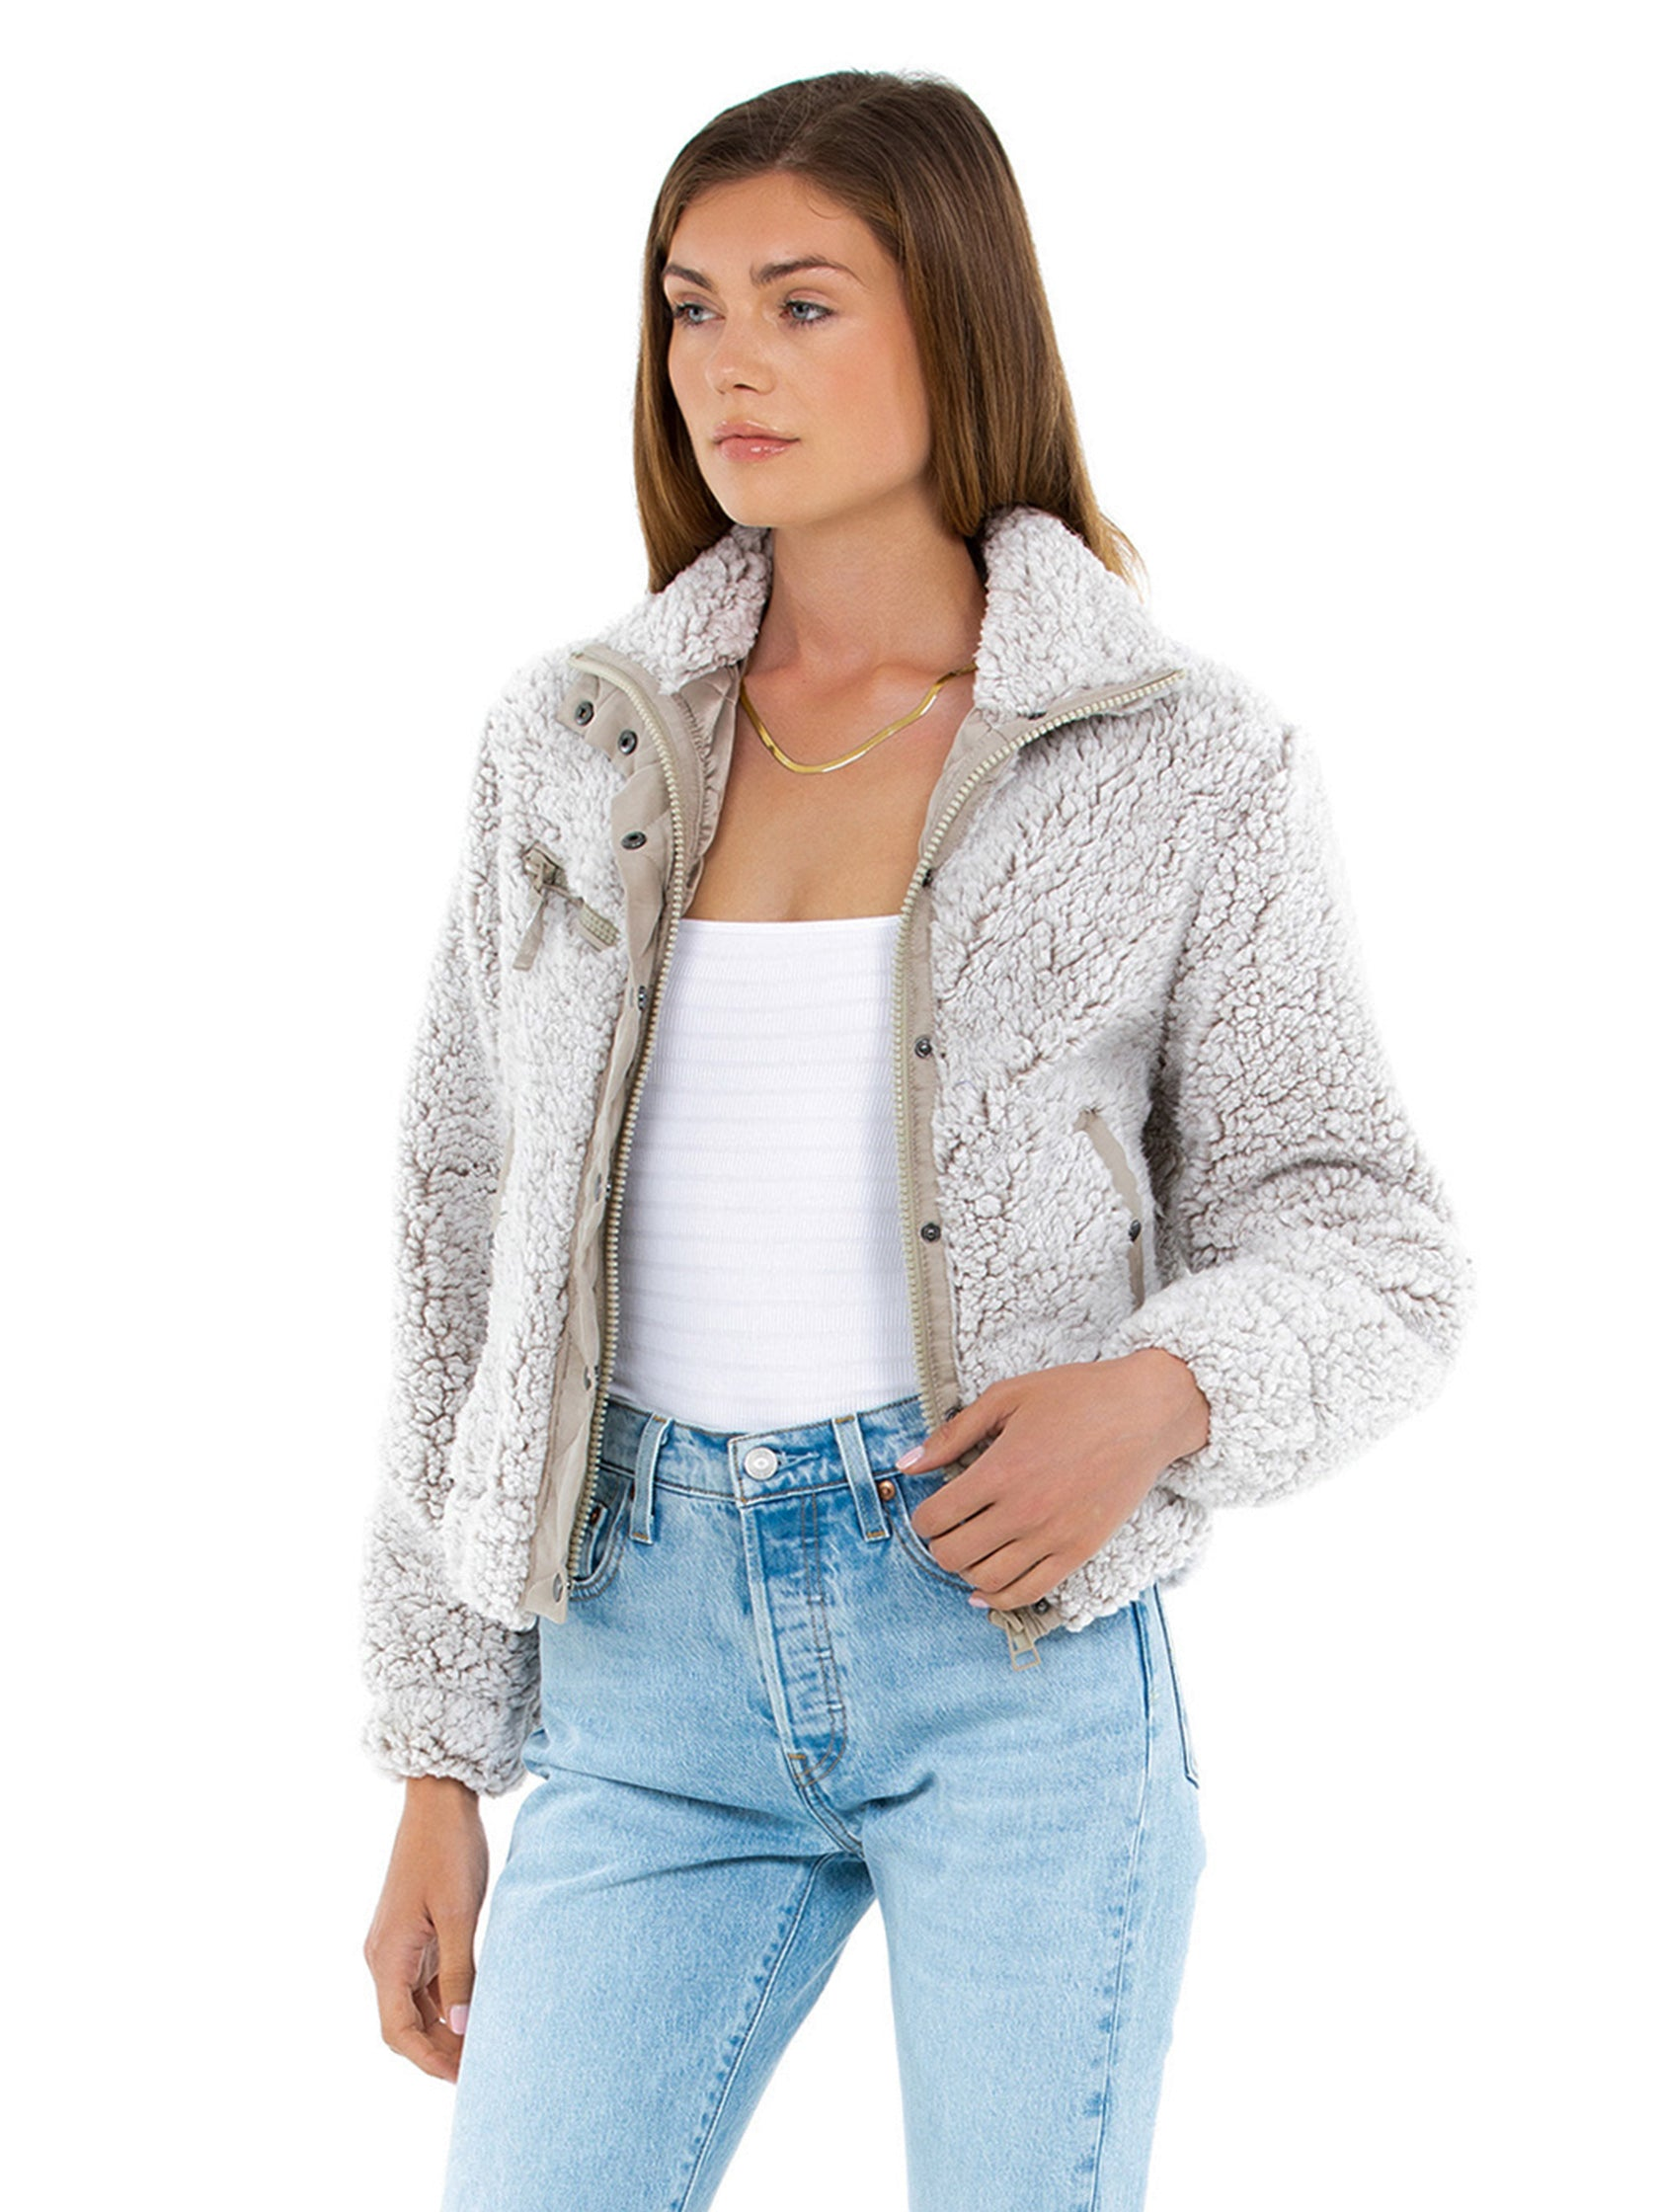 Women wearing a jacket rental from BLANKNYC called Angel Eyes Jacket